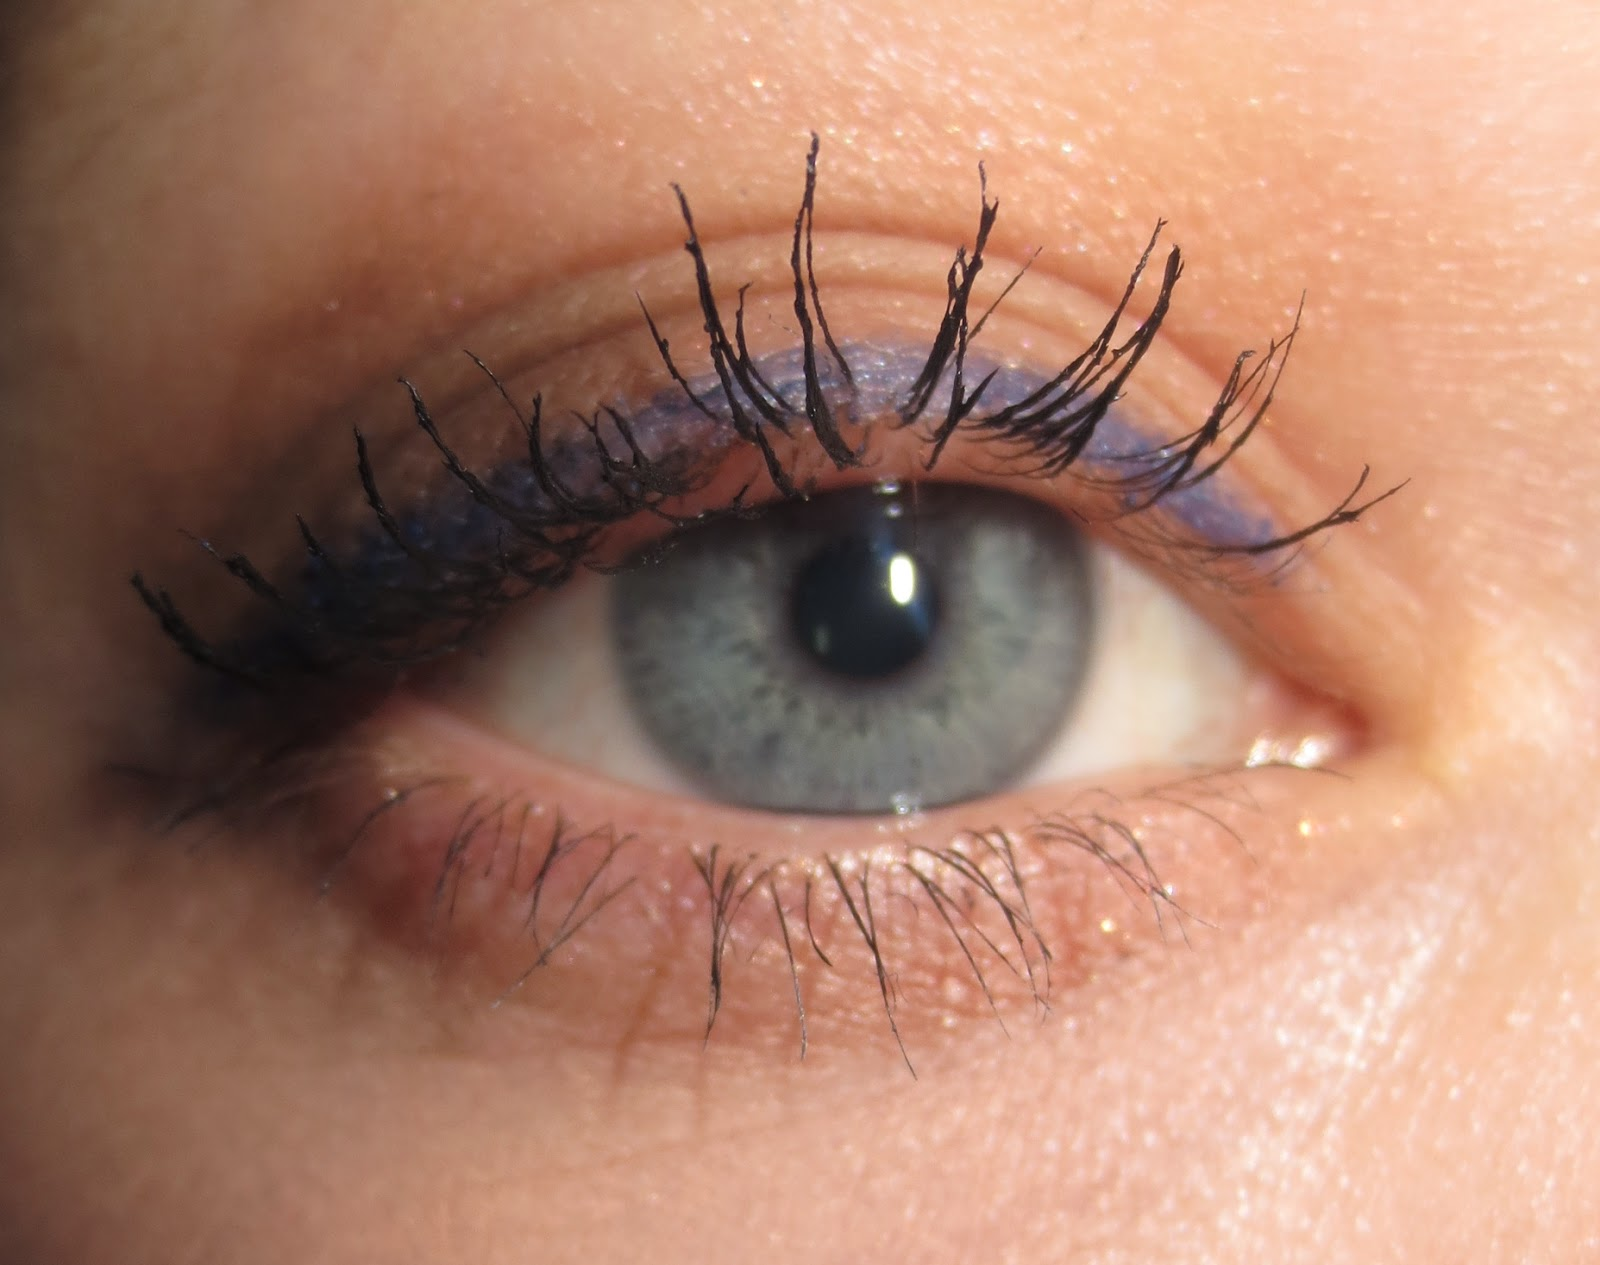 Clarins Truly Waterproof Mascara on Lashes